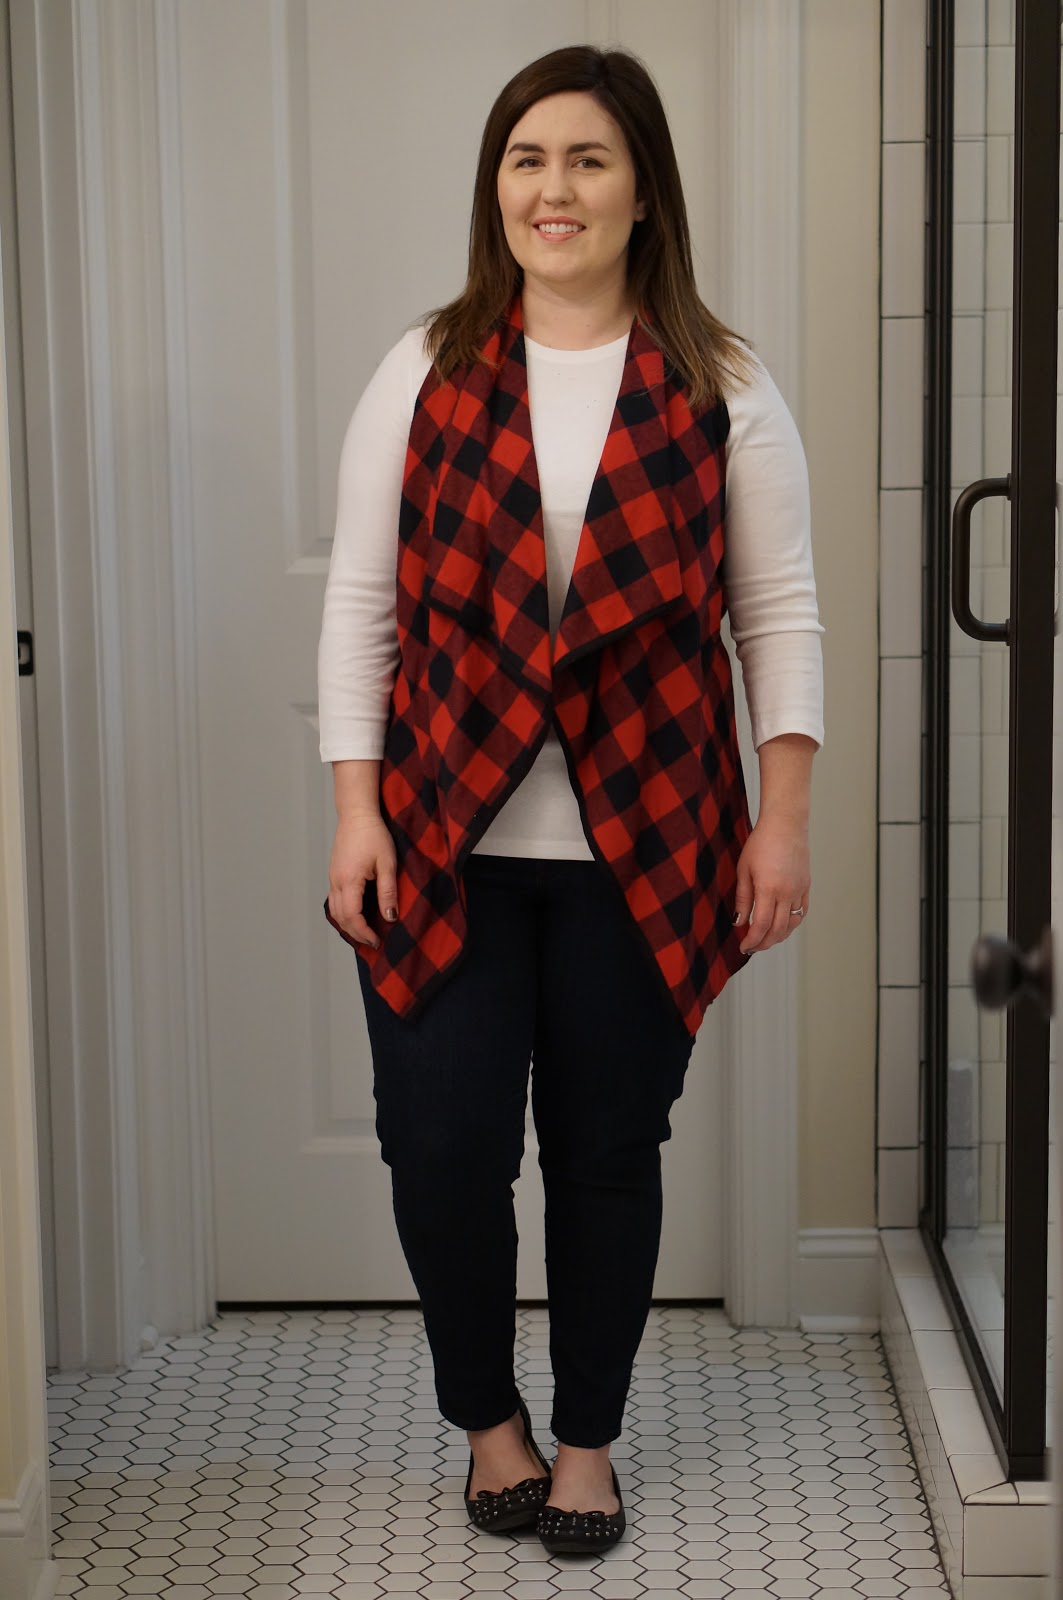 Rebecca Lately Buffalo Plaid Fall Style Flowy Vest White Top Skinny Jeans Studded Flats